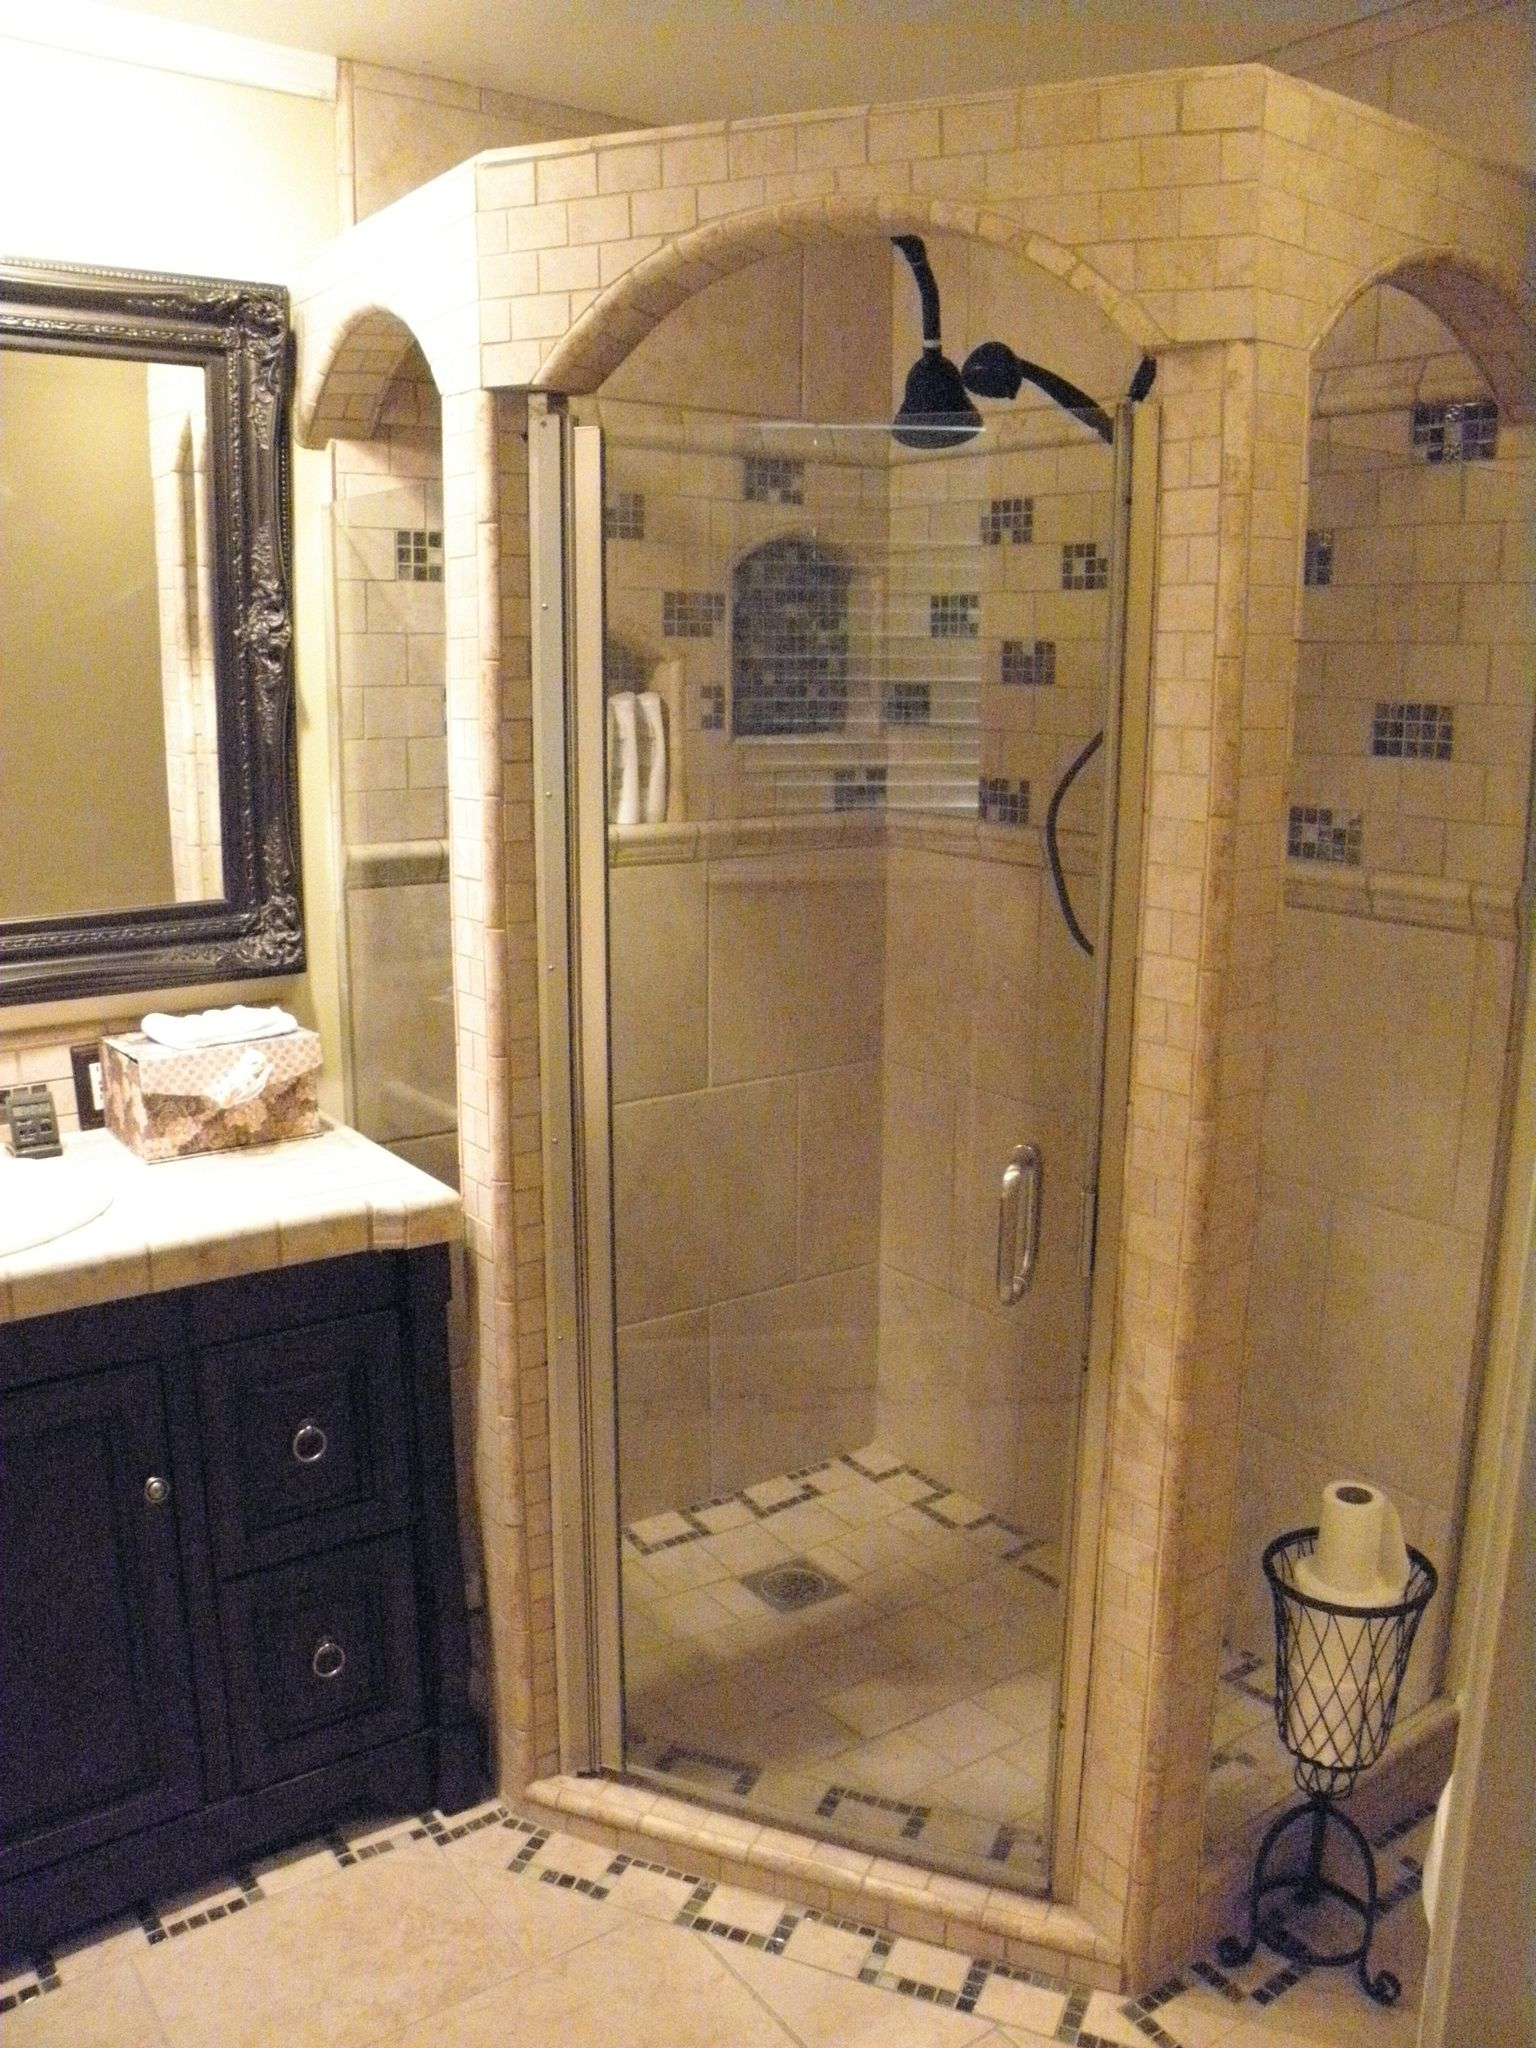 Restroom Ideas 1000+ images about new restroom on pinterest | shelves, restroom